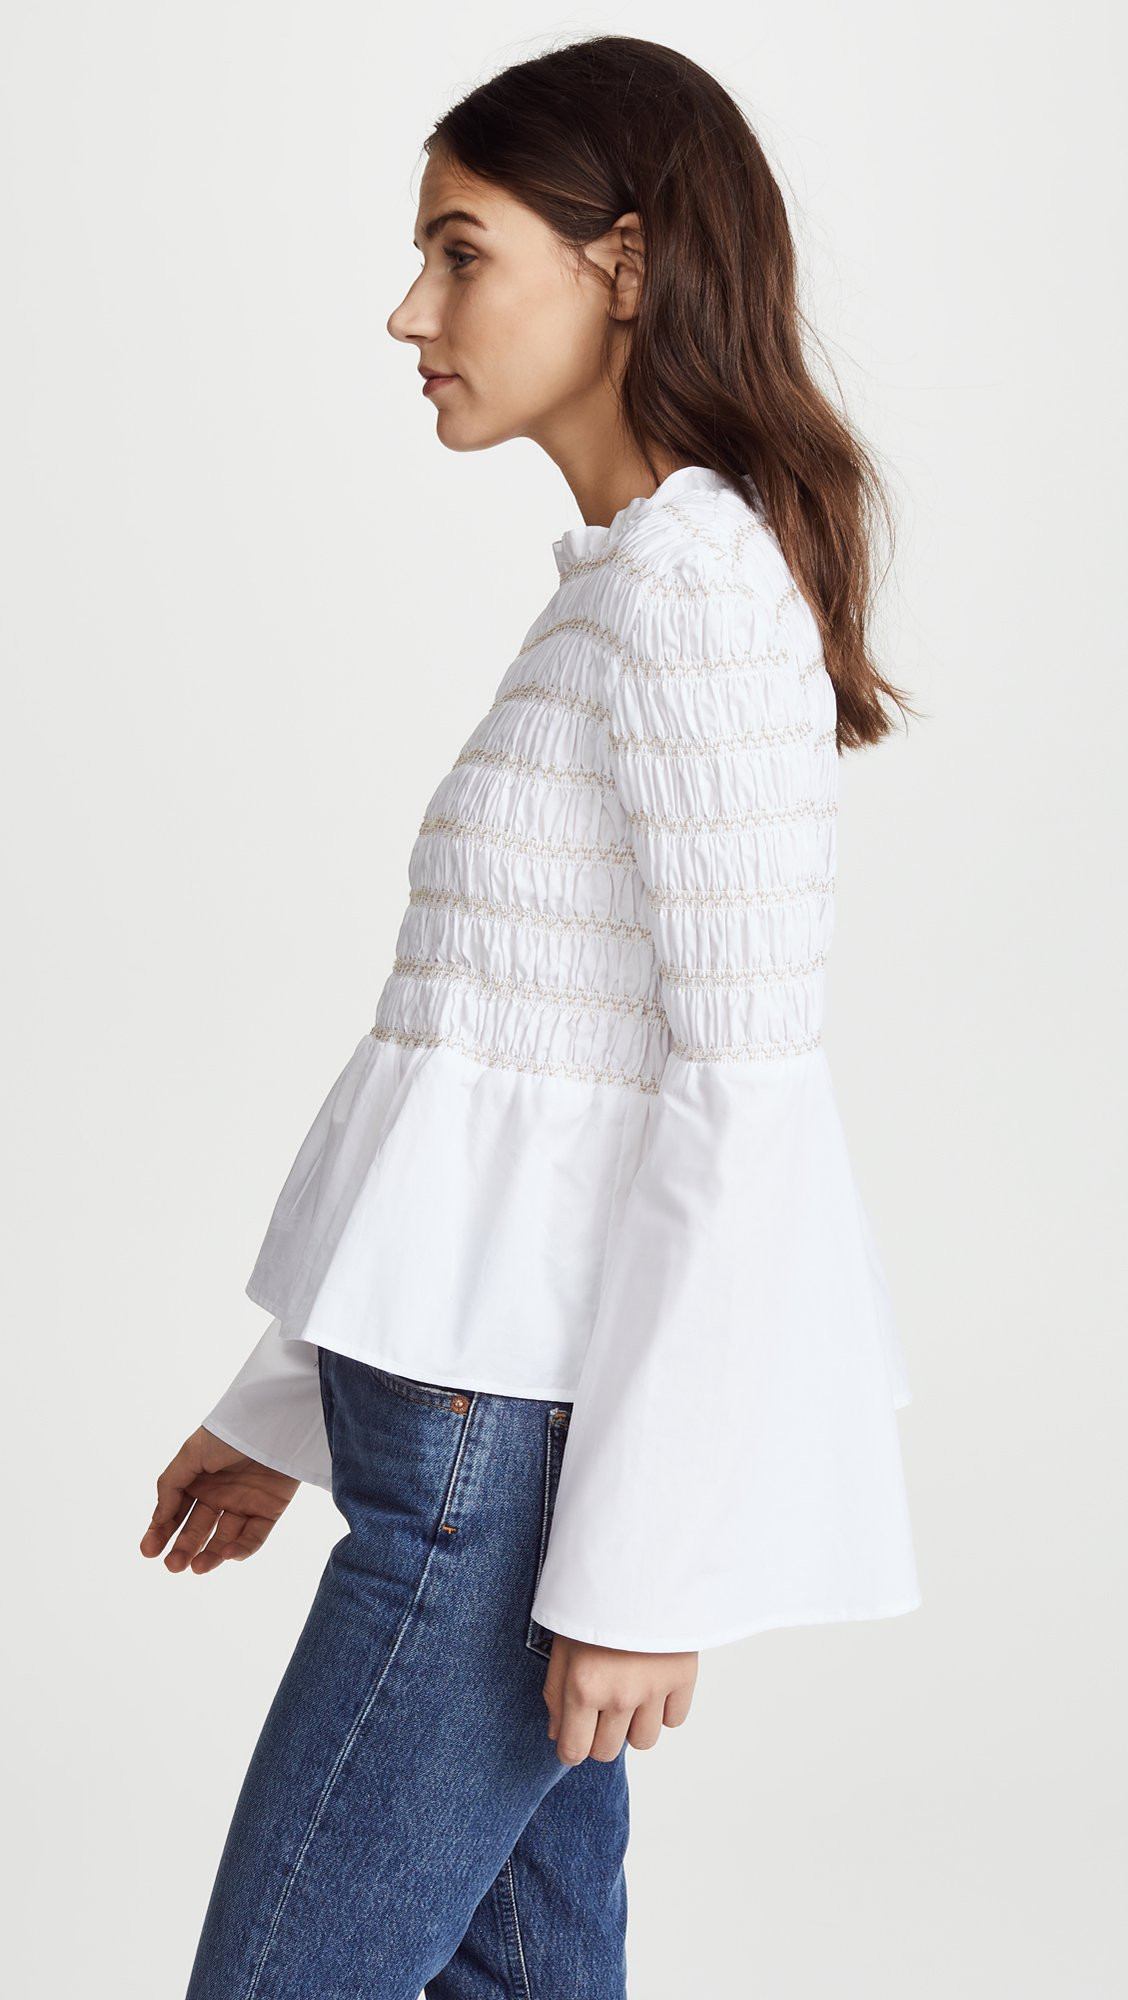 endless rose Women's Smocked Poplin Top, Off White, Small by endless rose (Image #4)